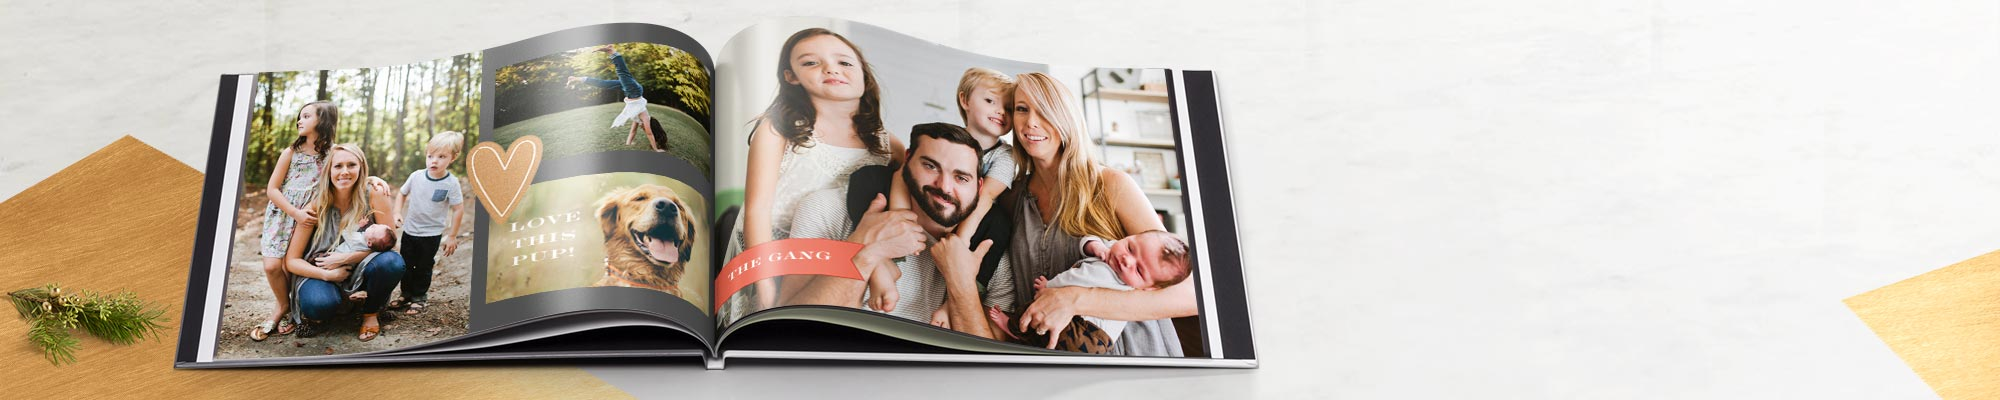 Photo Books : Re-live all your special moments with a quality photo book - available in a variety of sizes, covers and styles.